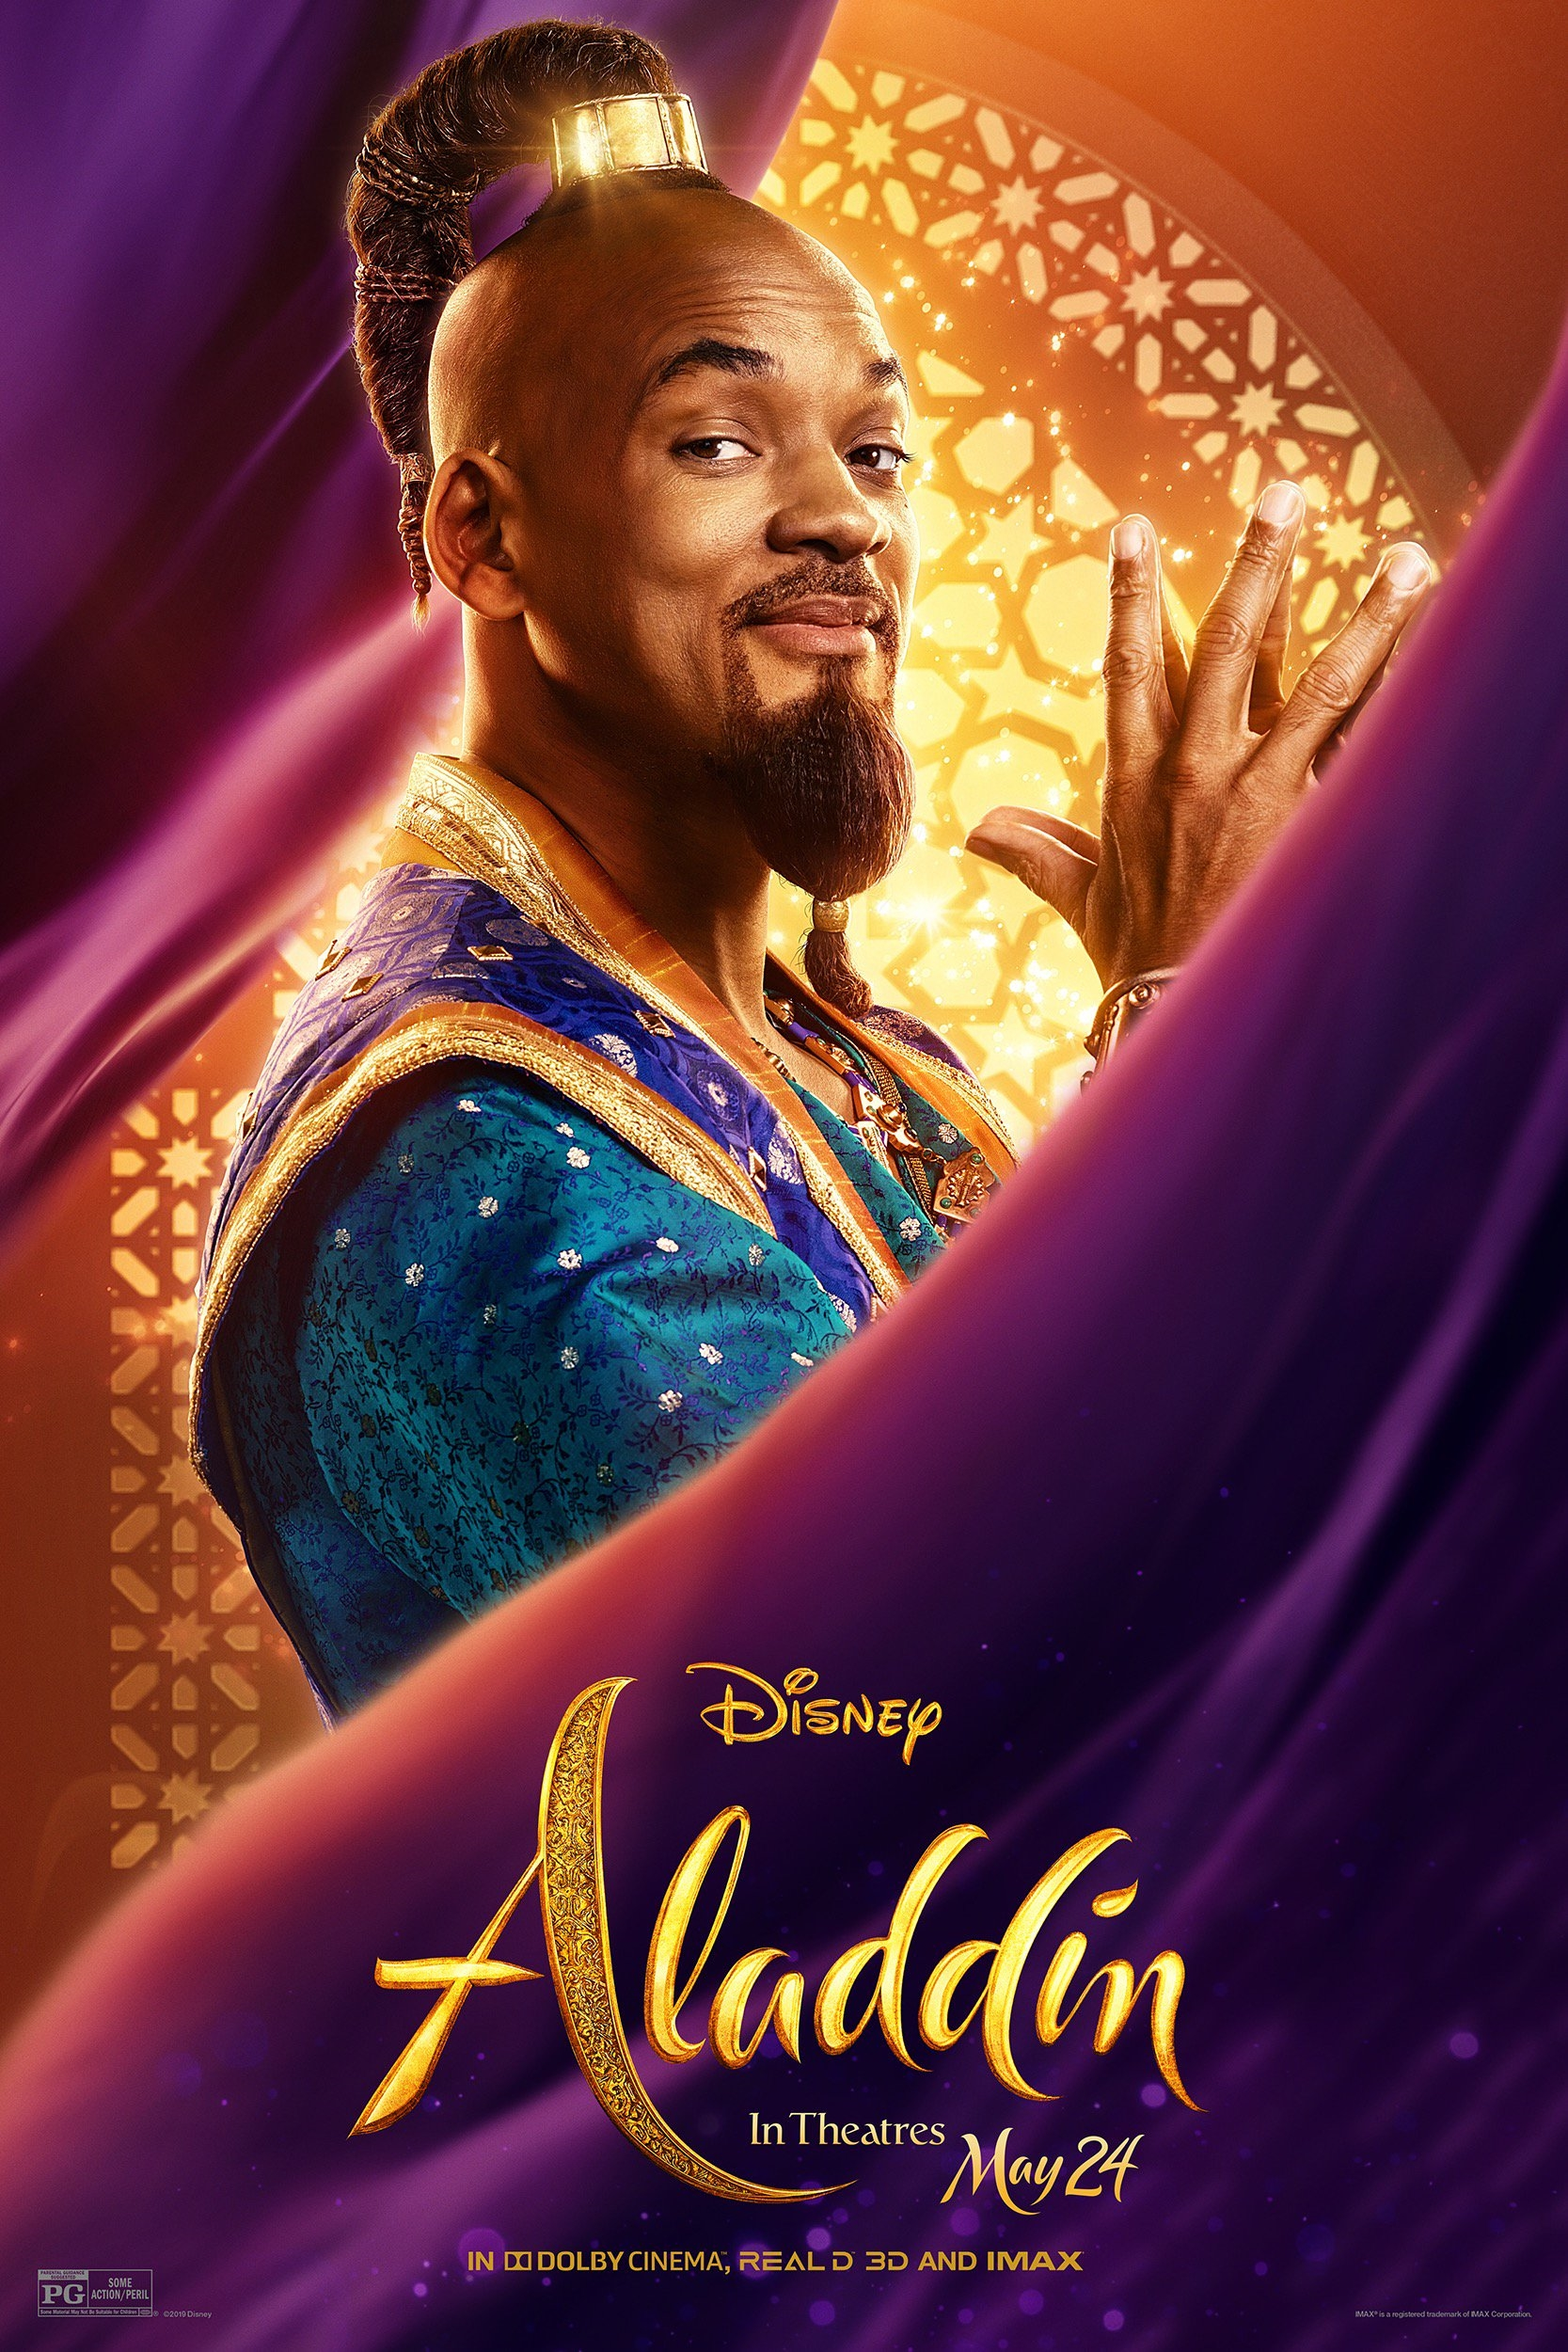 Genie (2019) | Aladdin Wiki | FANDOM powered by Wikia